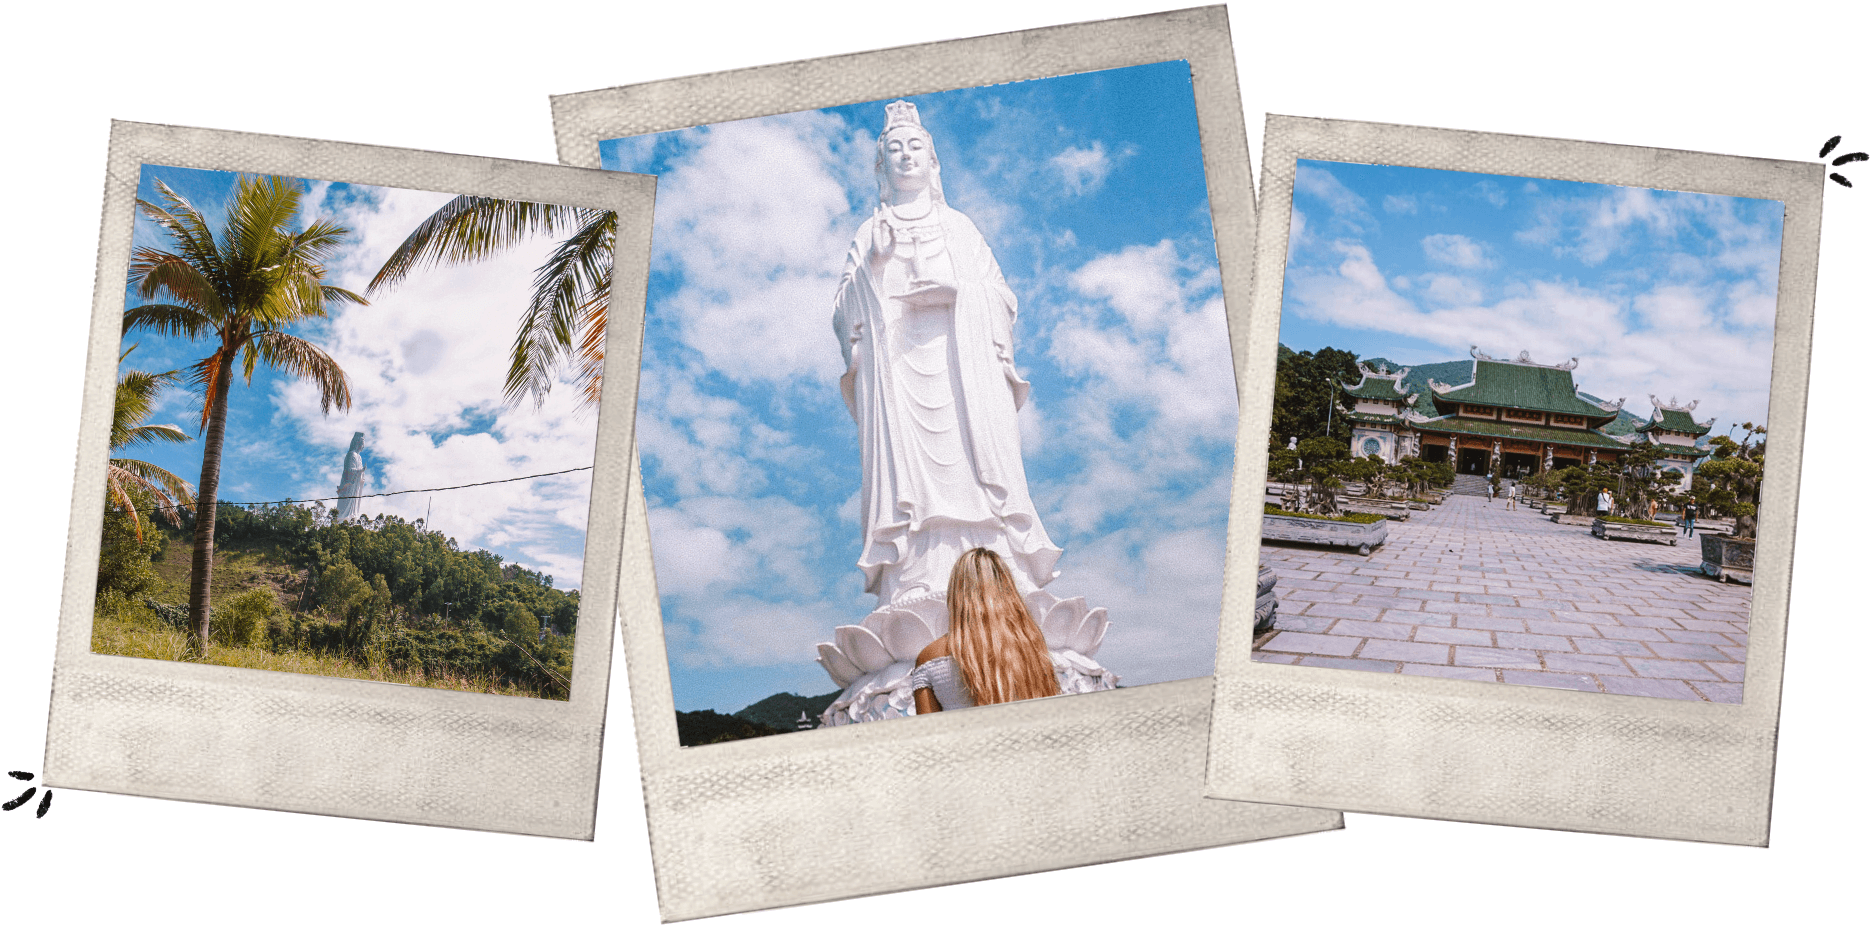 best things to do in Da Nang vietnam experiences linh ung pagoda lady buddha